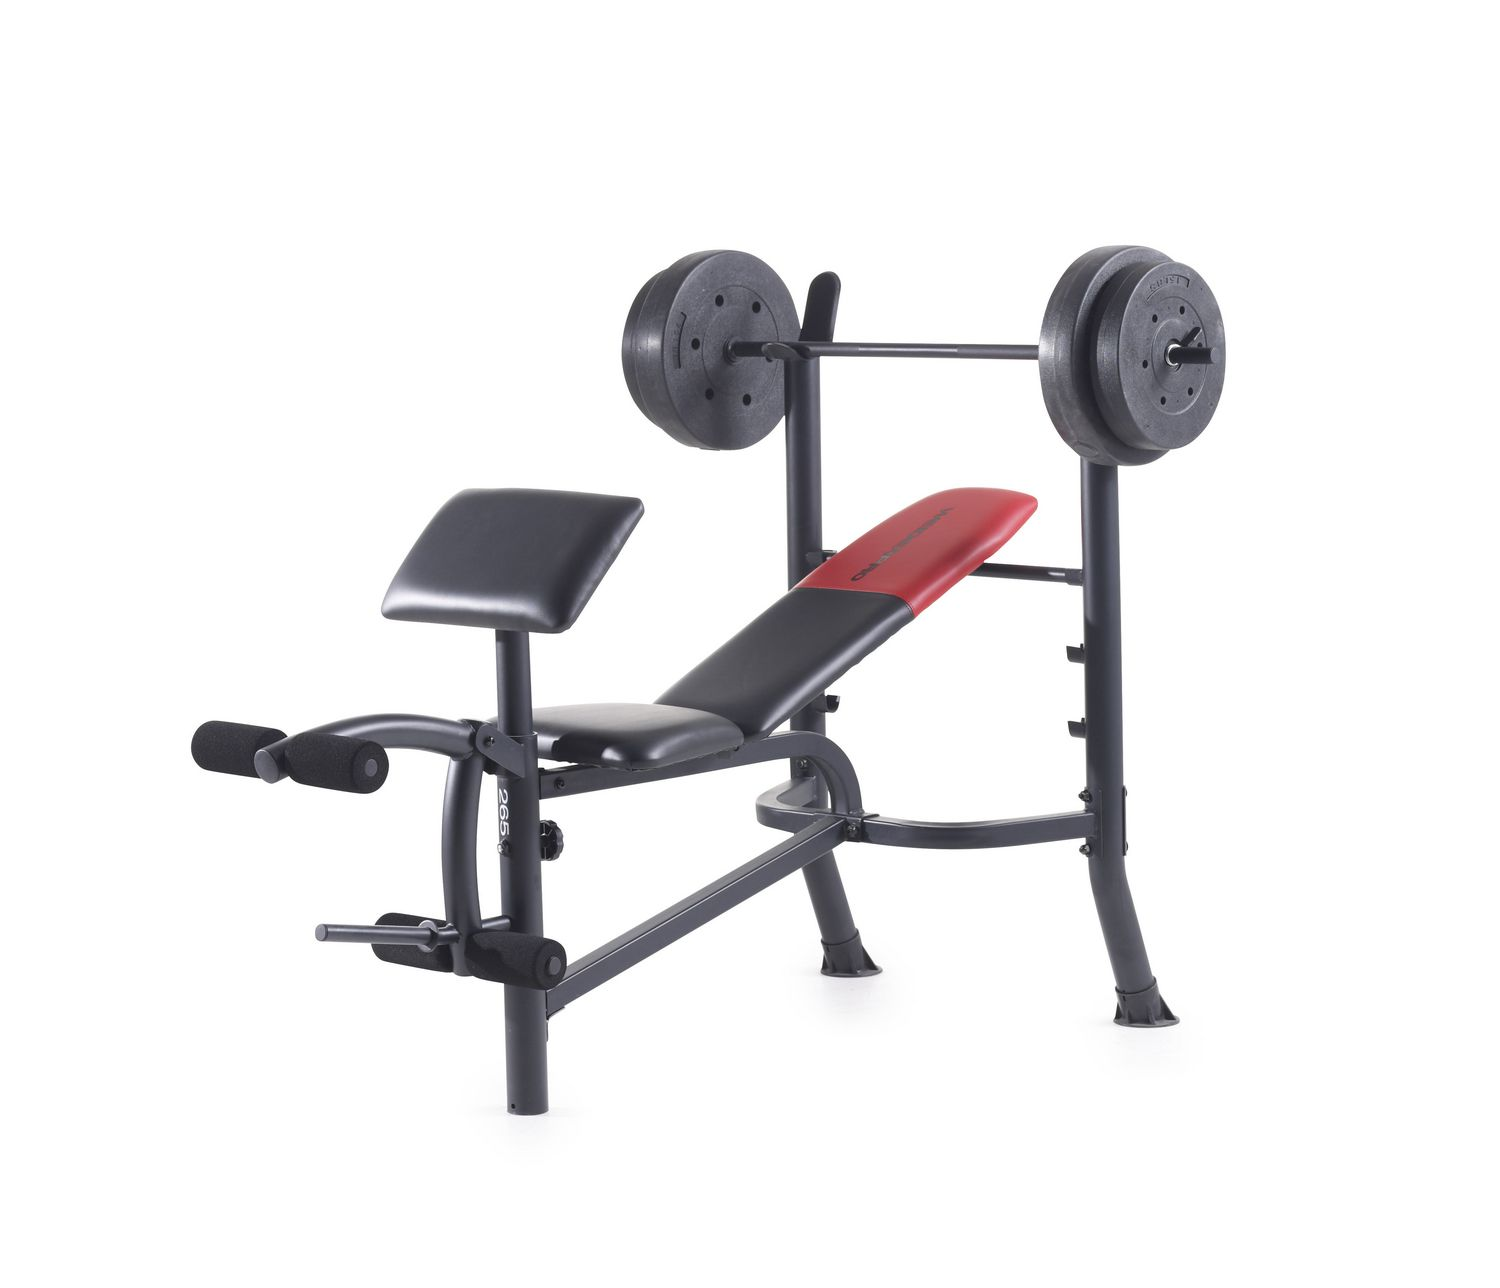 prod details sharpen op pro weight jsp d spin l wid weider hei sears outlet product bench